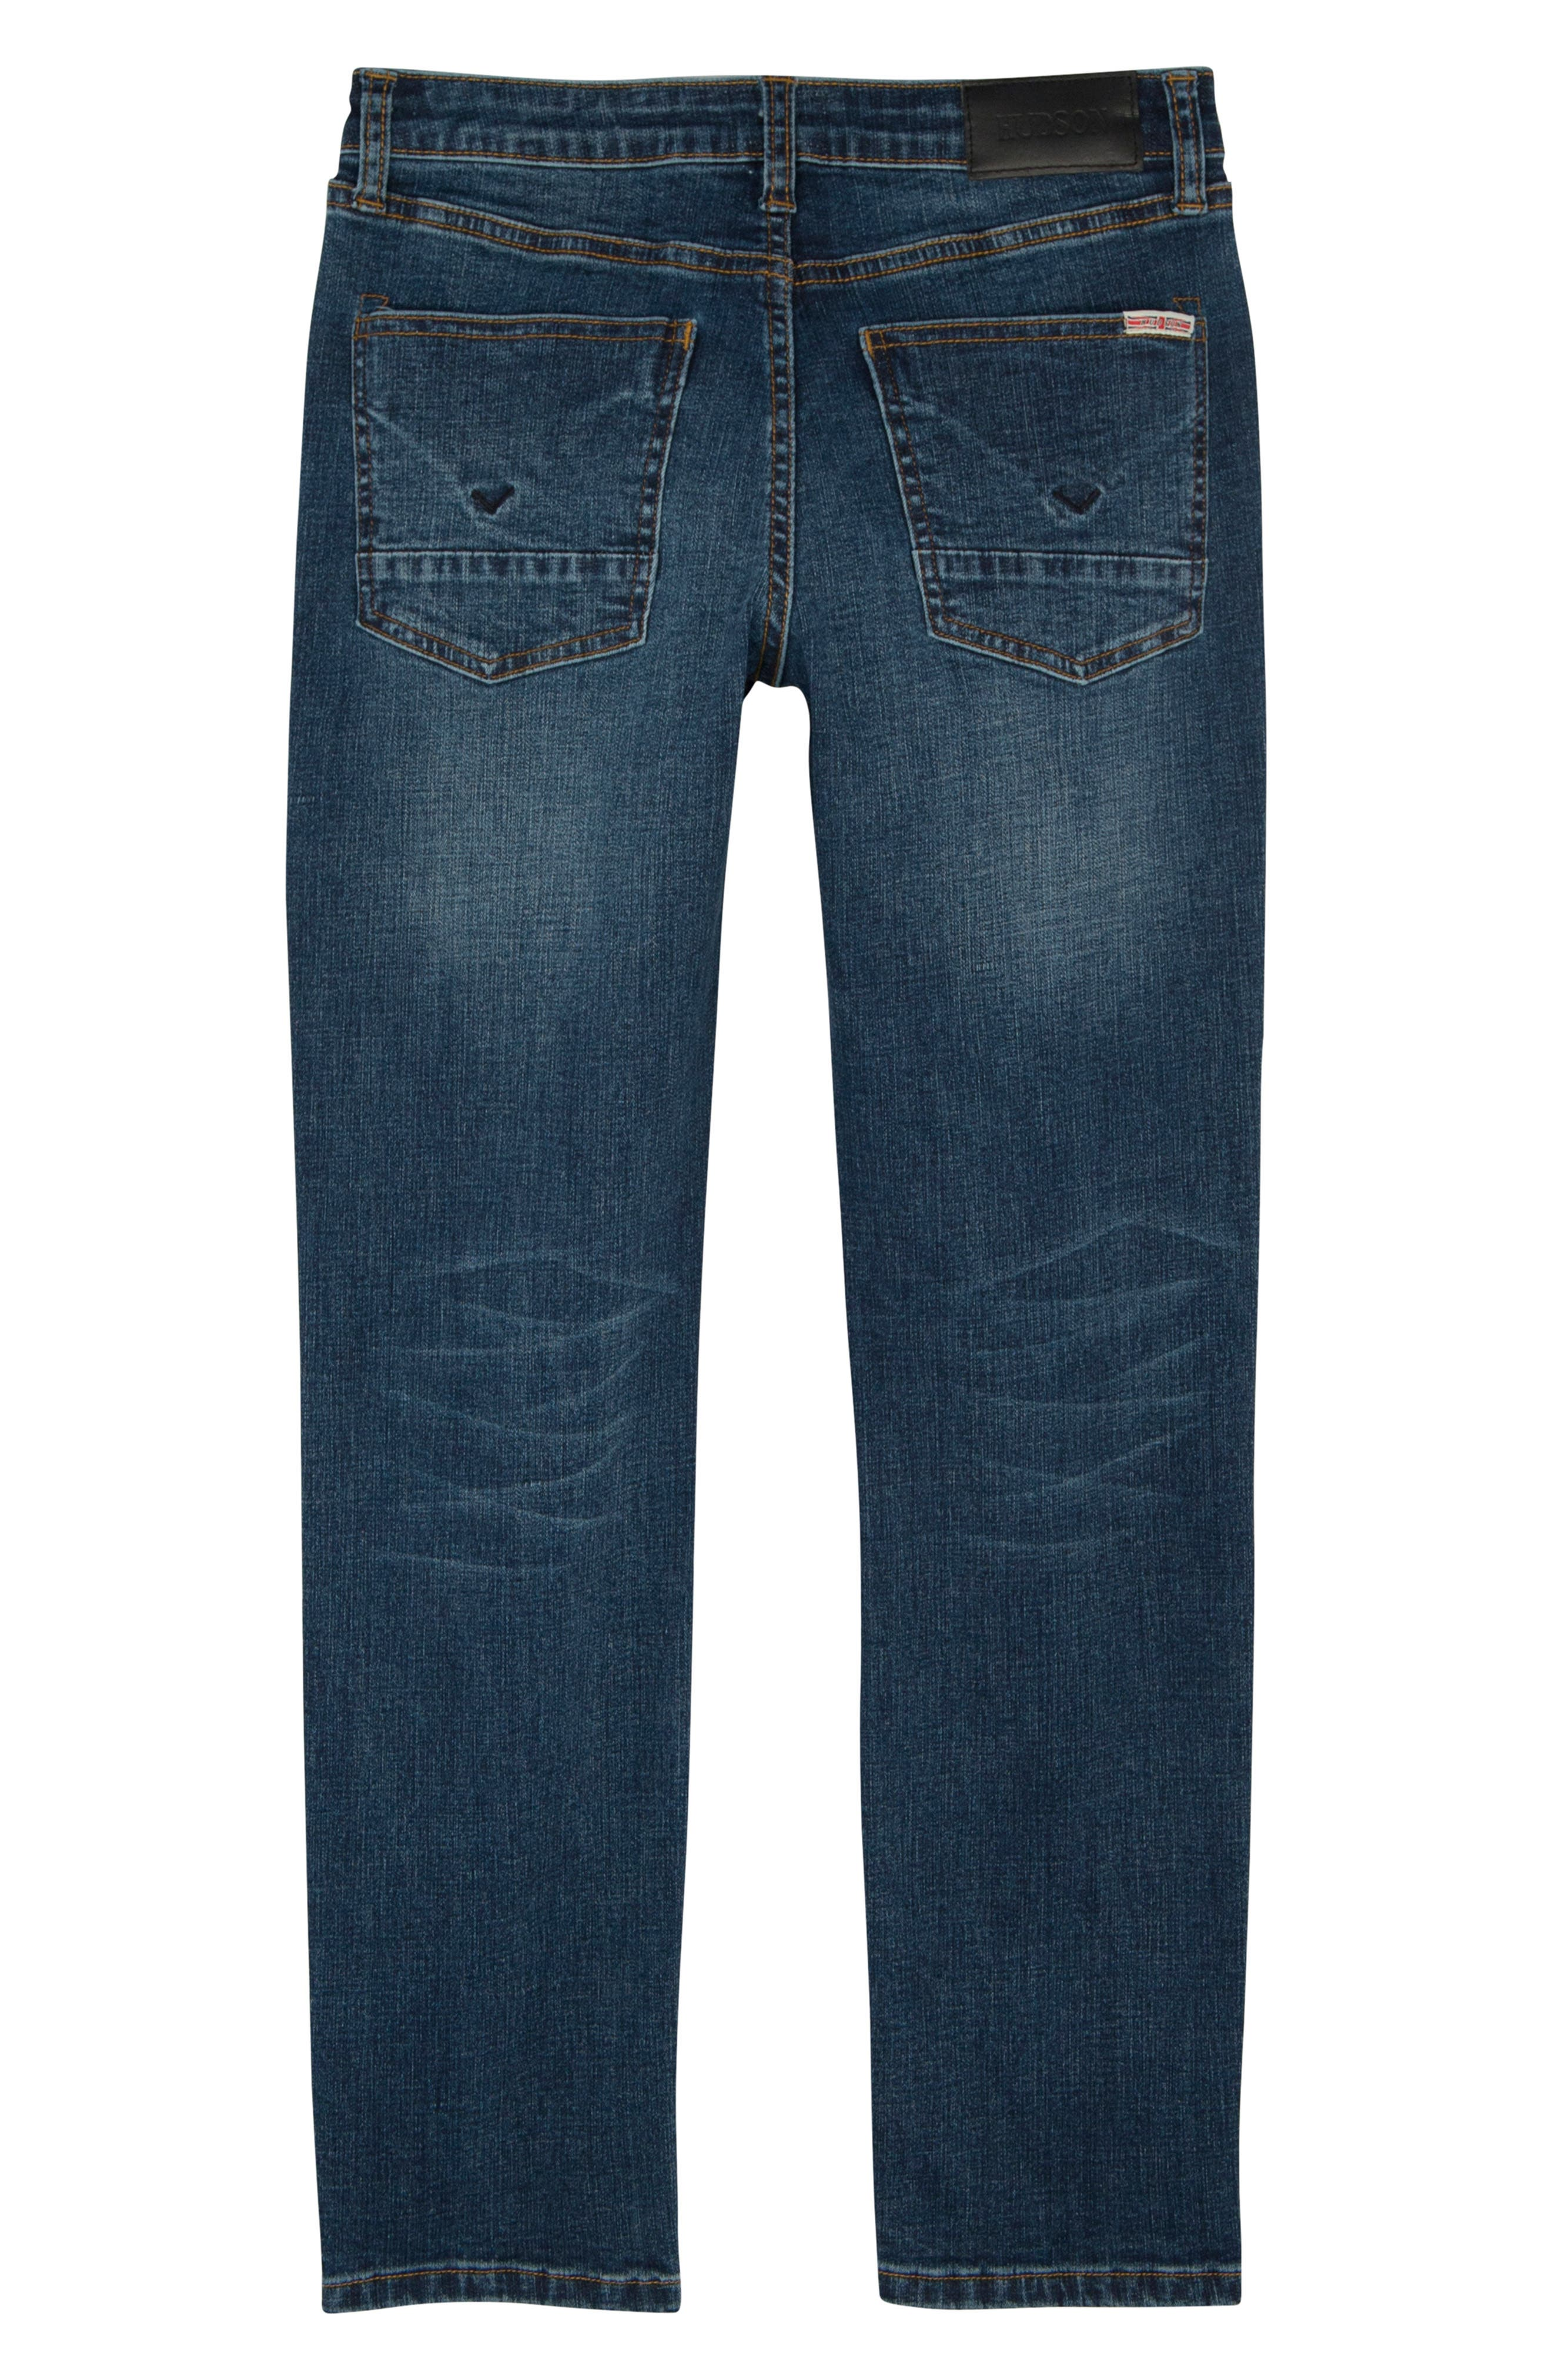 Jude Skinny Jeans,                             Alternate thumbnail 2, color,                             LEGEND WASH GRAPH